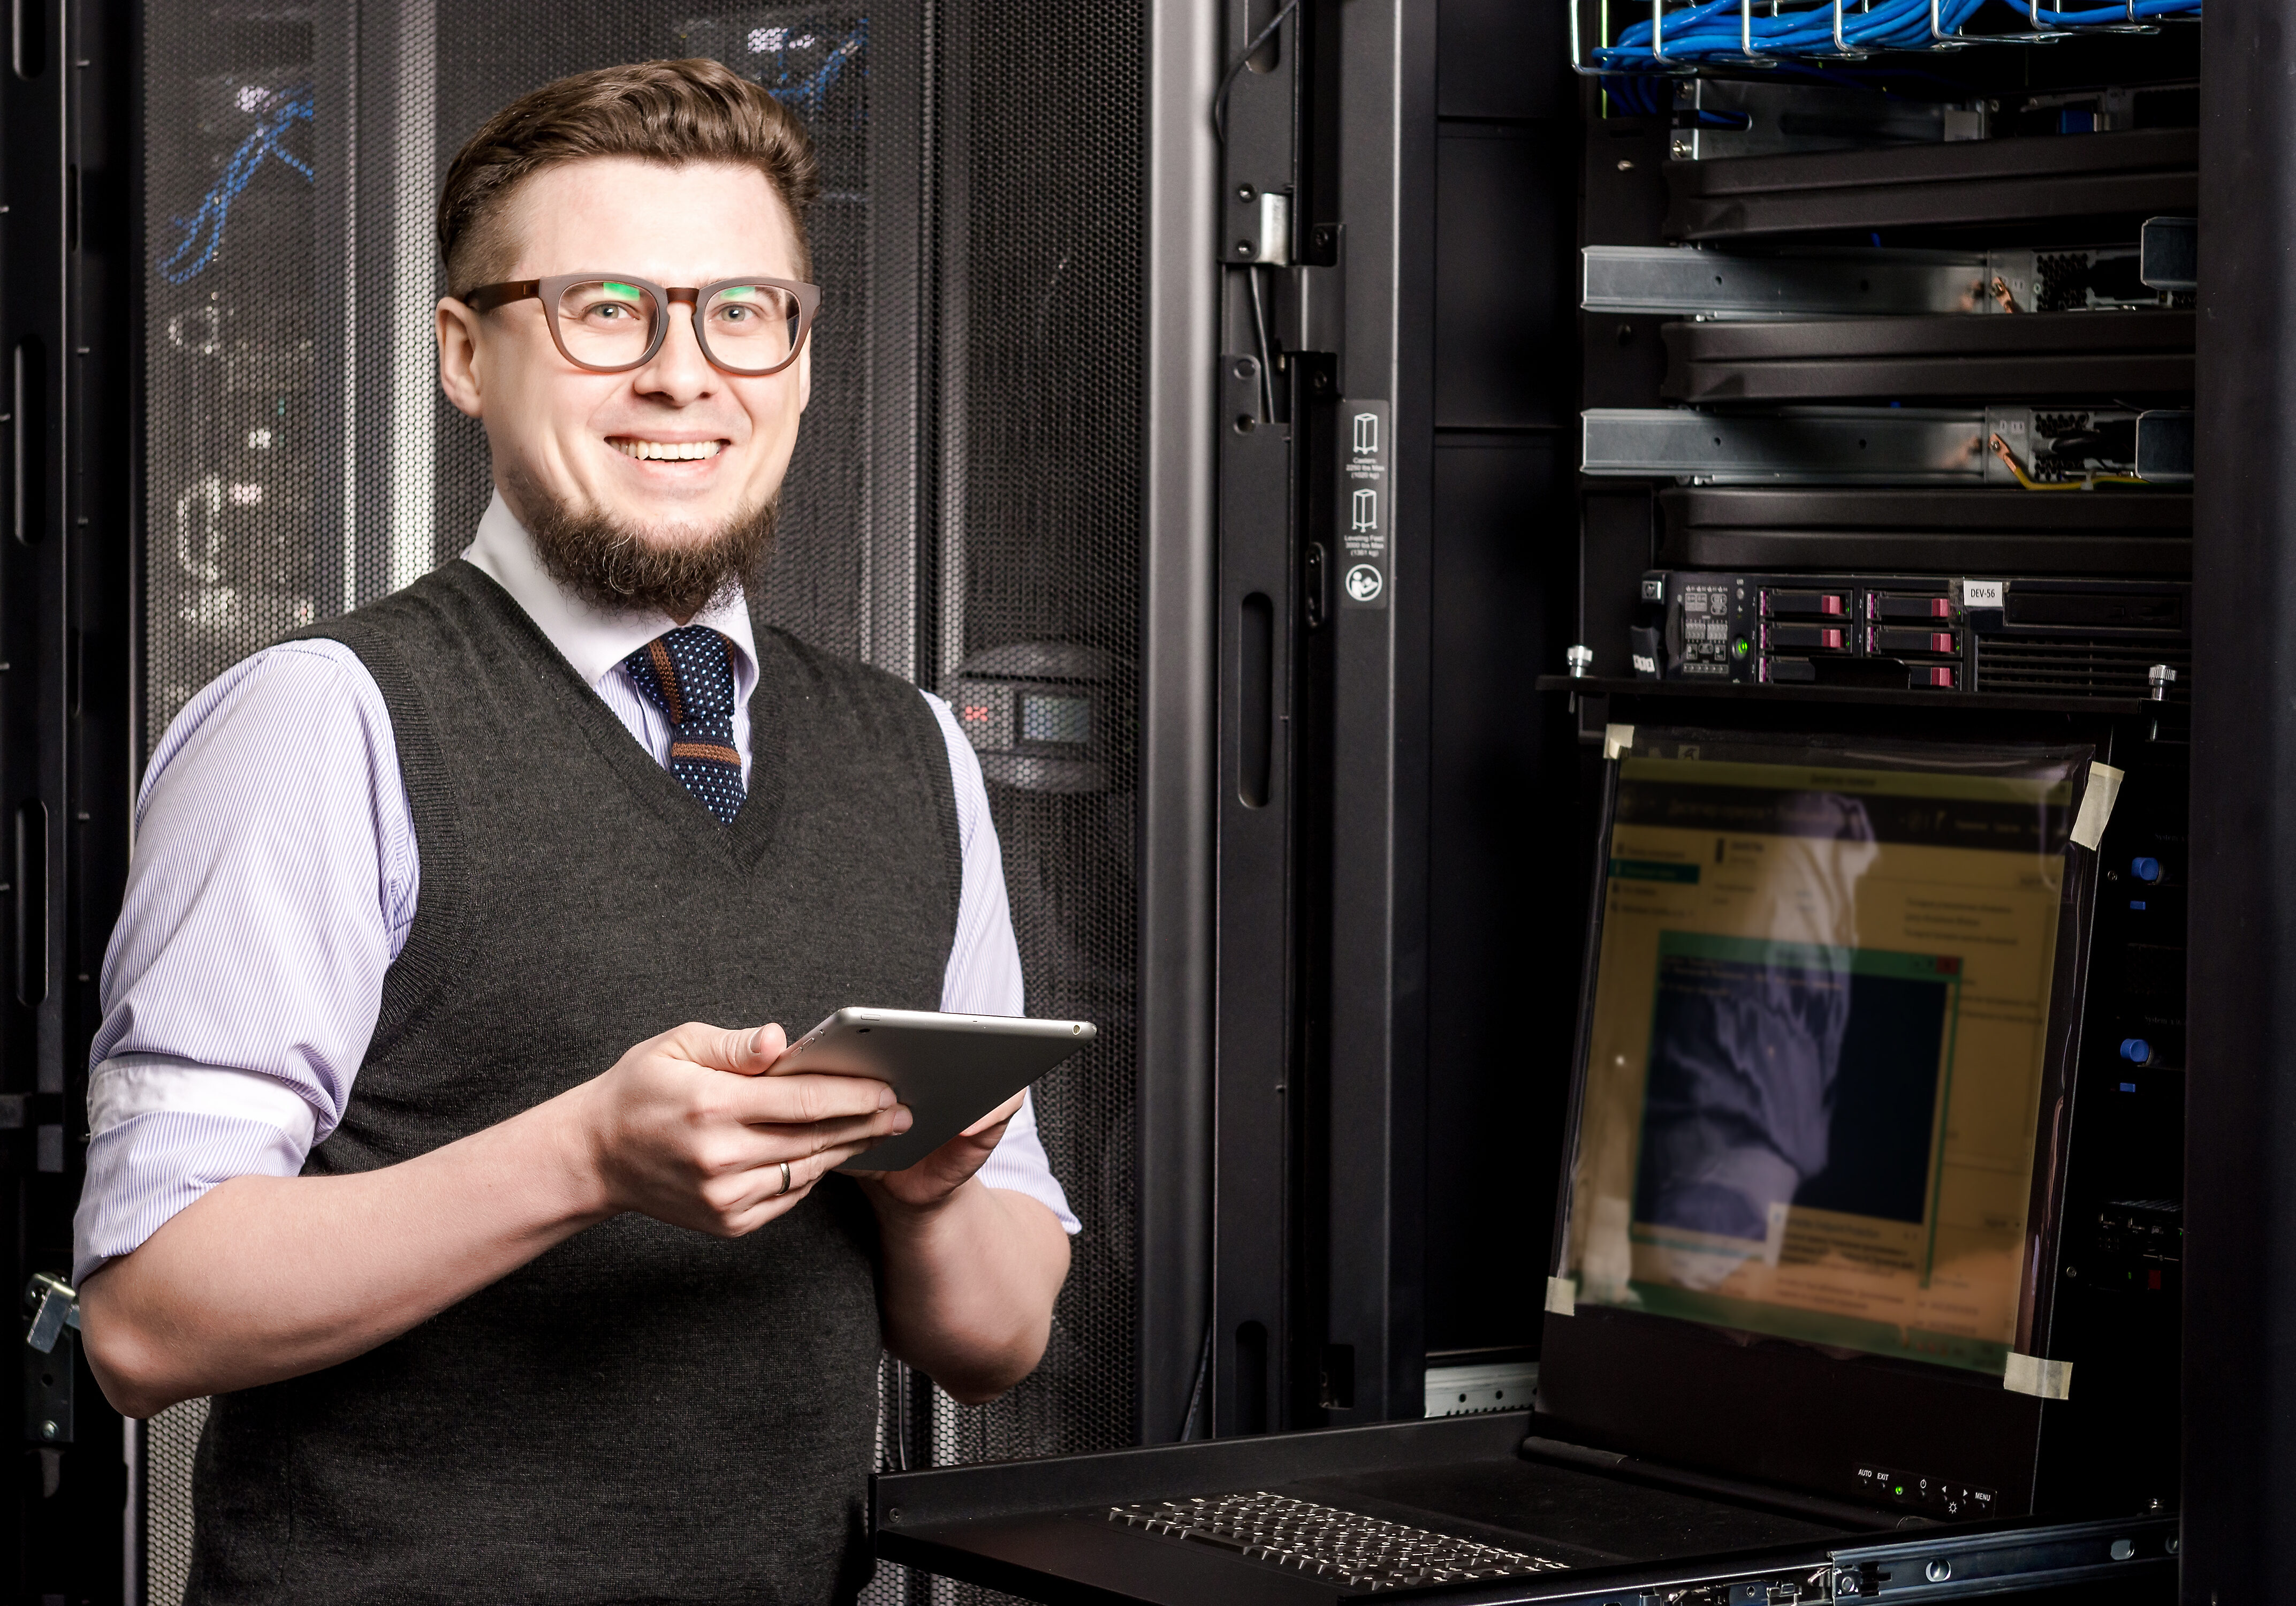 Young engineer wearing glasses in a datacenter